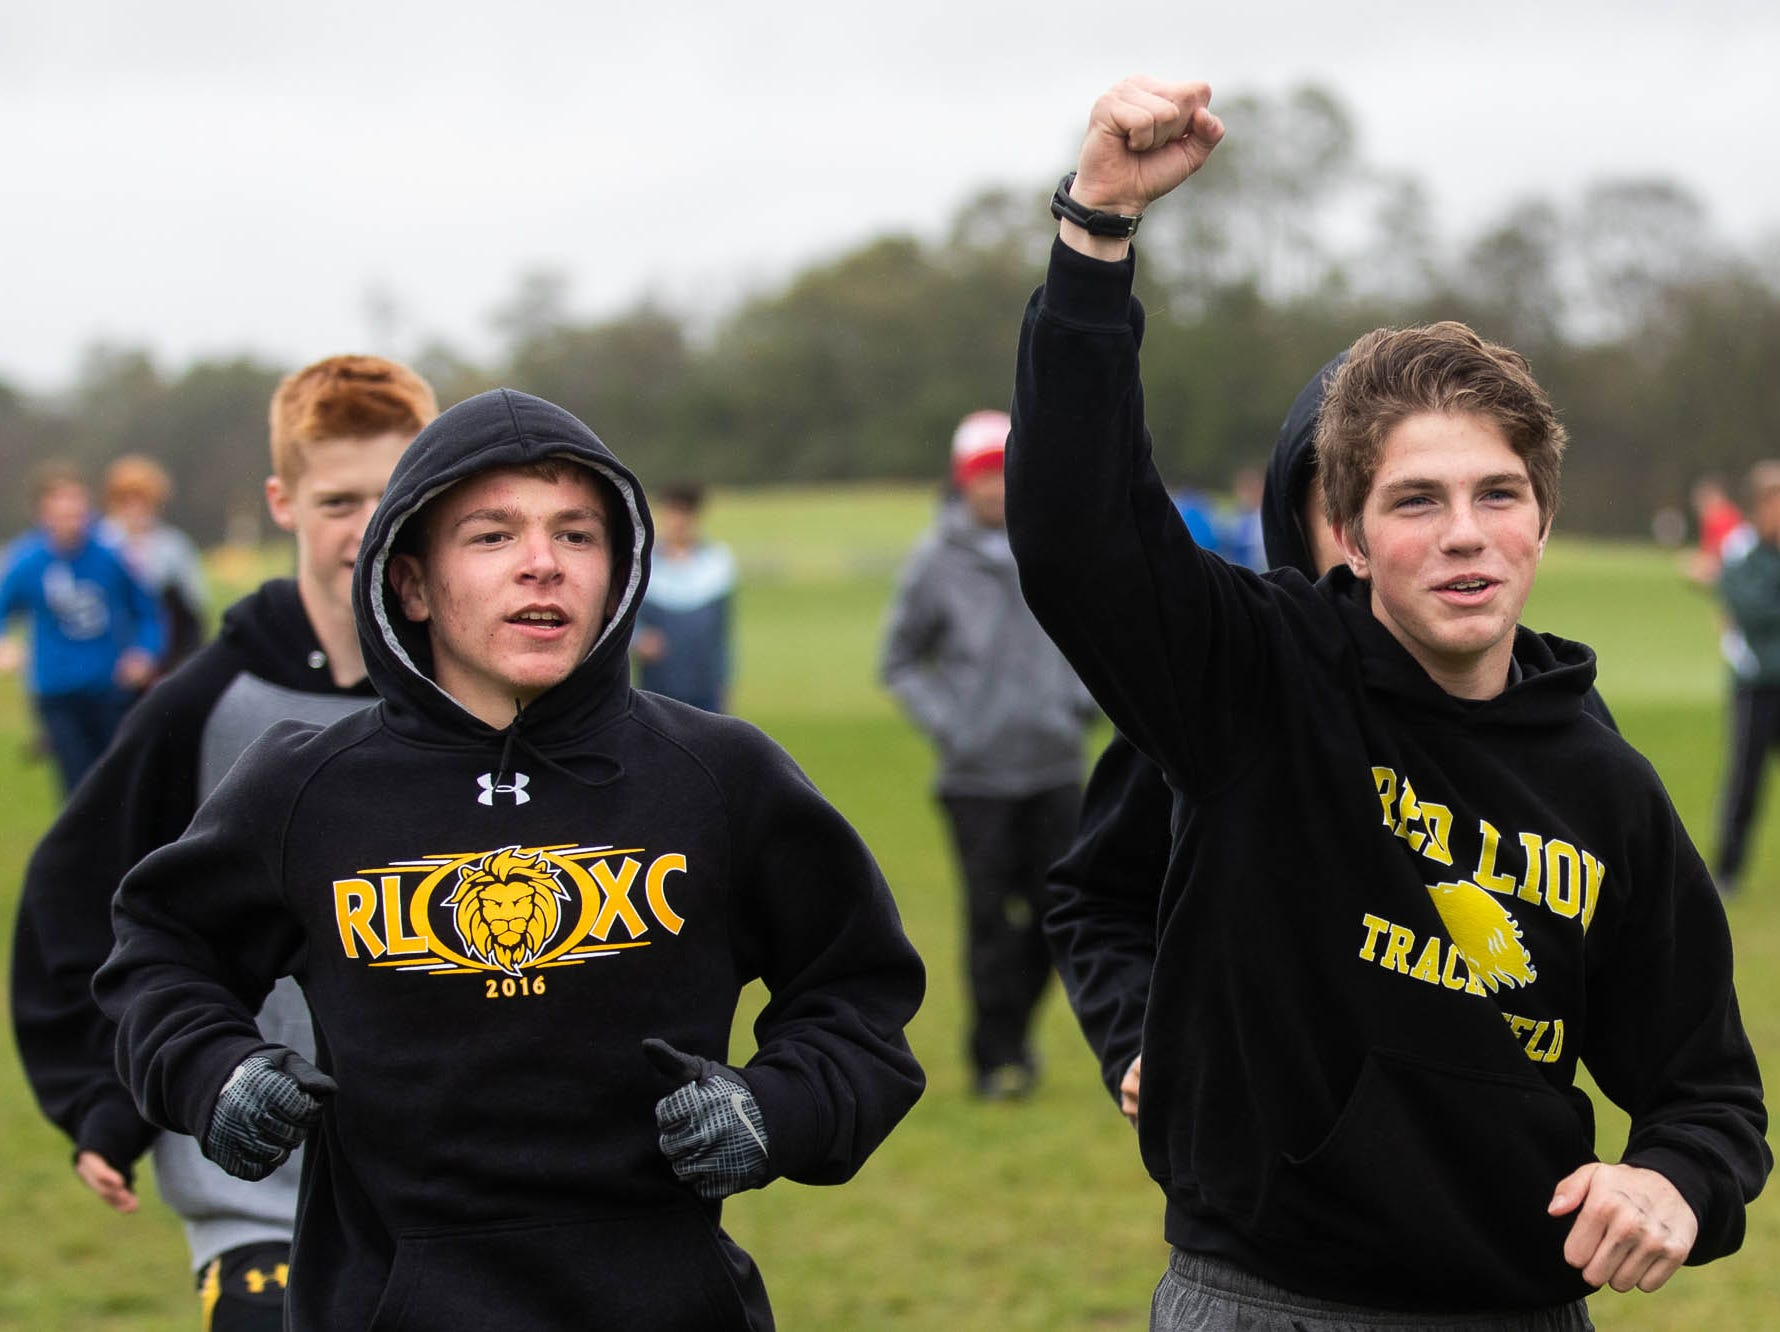 The Red Lion boys team warms up for the Boys AAA race during the PIAA District III Cross Country Championship, Saturday, Oct. 27, 2018, at Big Spring High School in Newville.